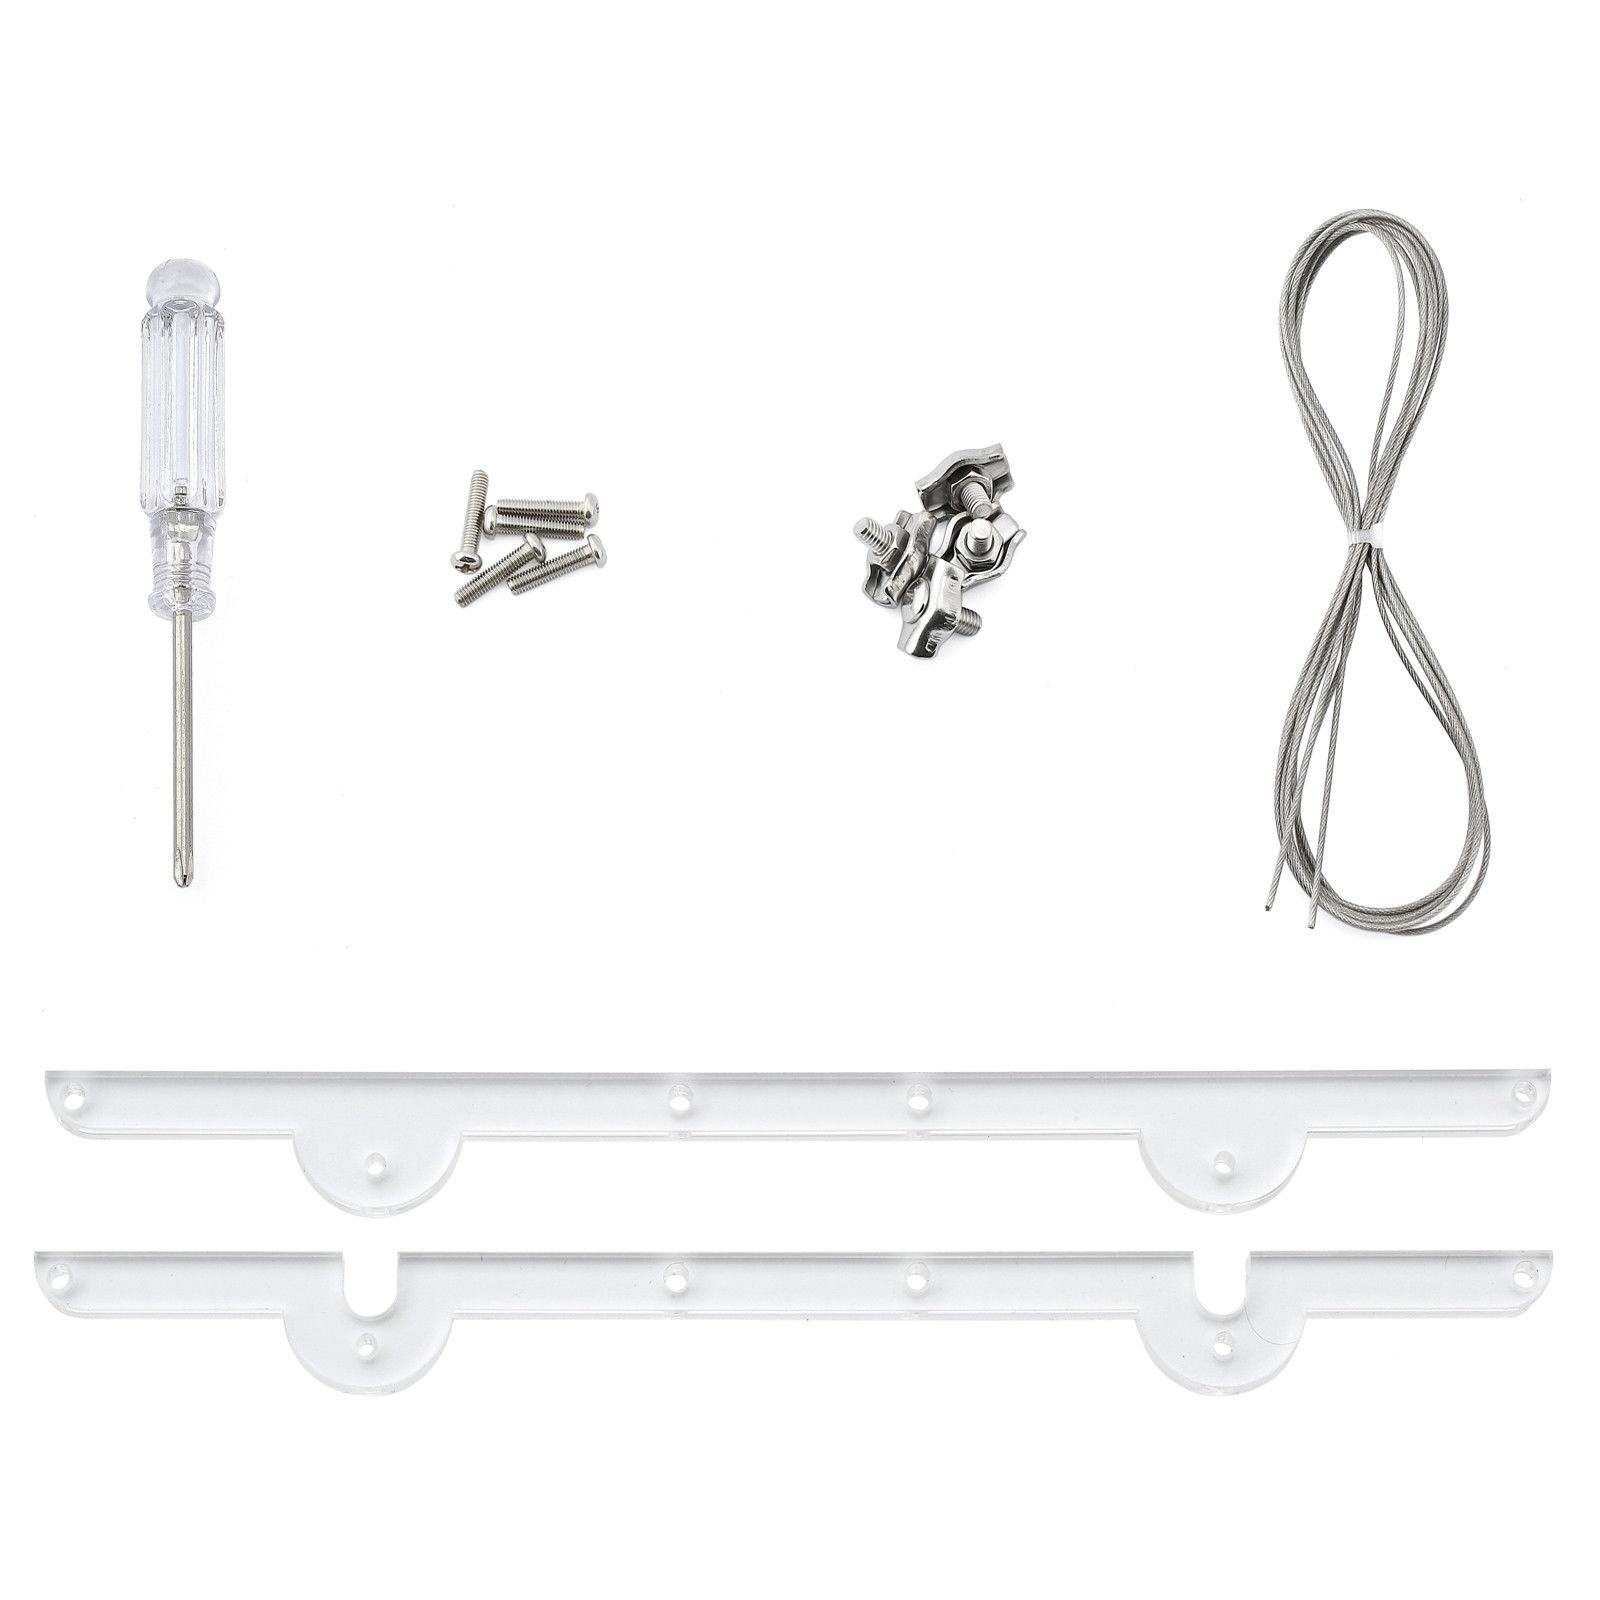 Chihiros - Cable Suspension Kit - A-plus-Series